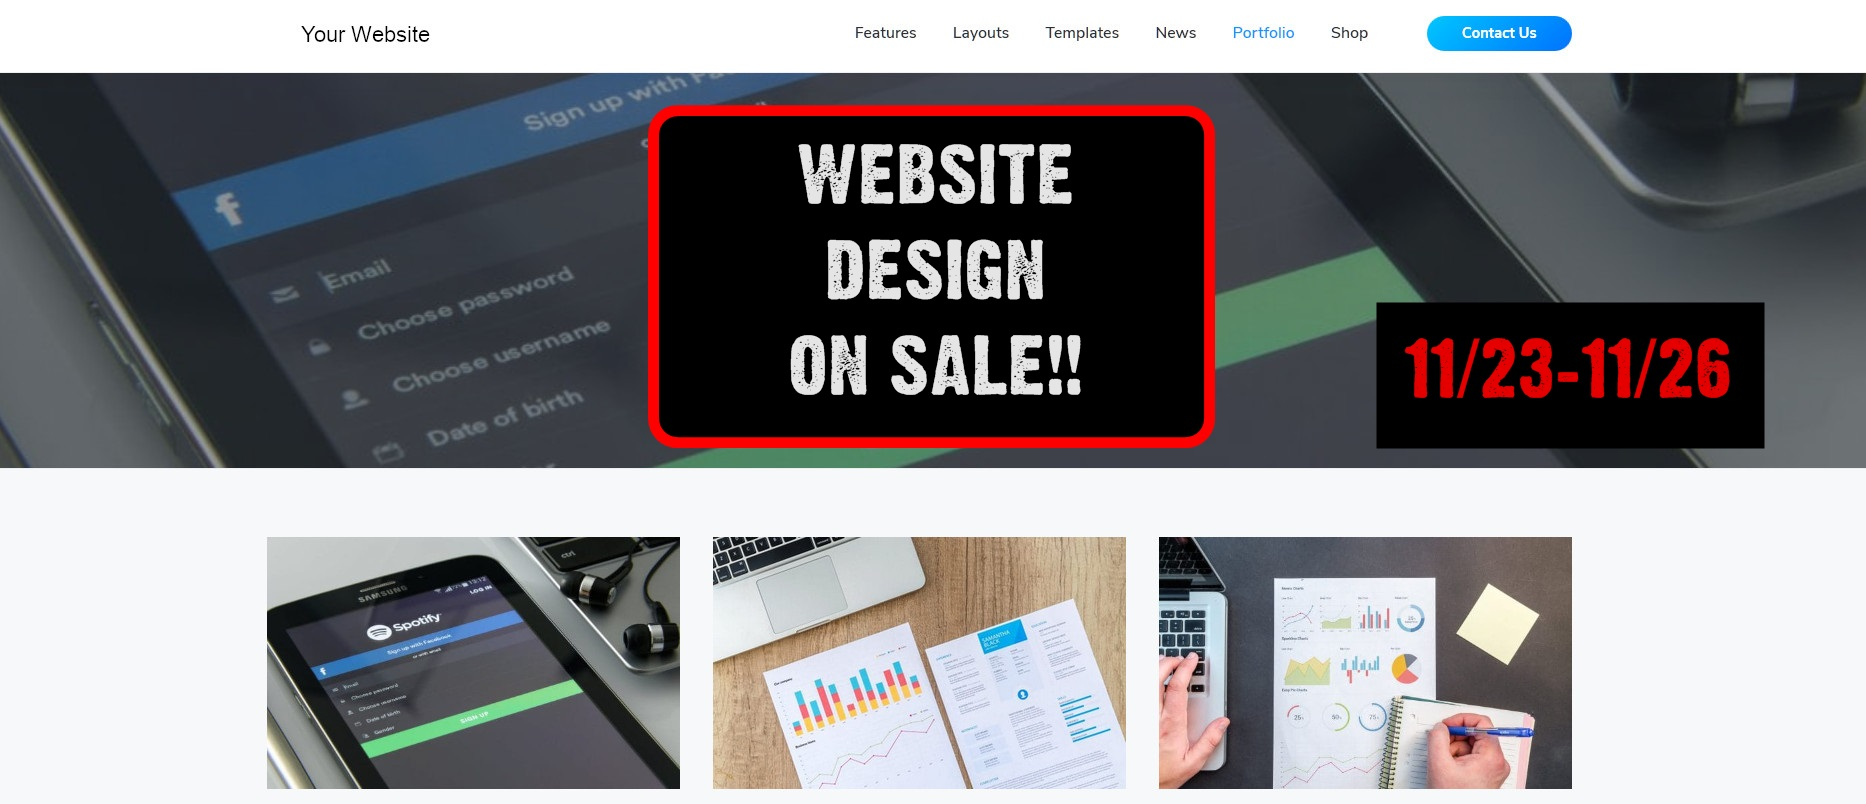 Website Design on sale